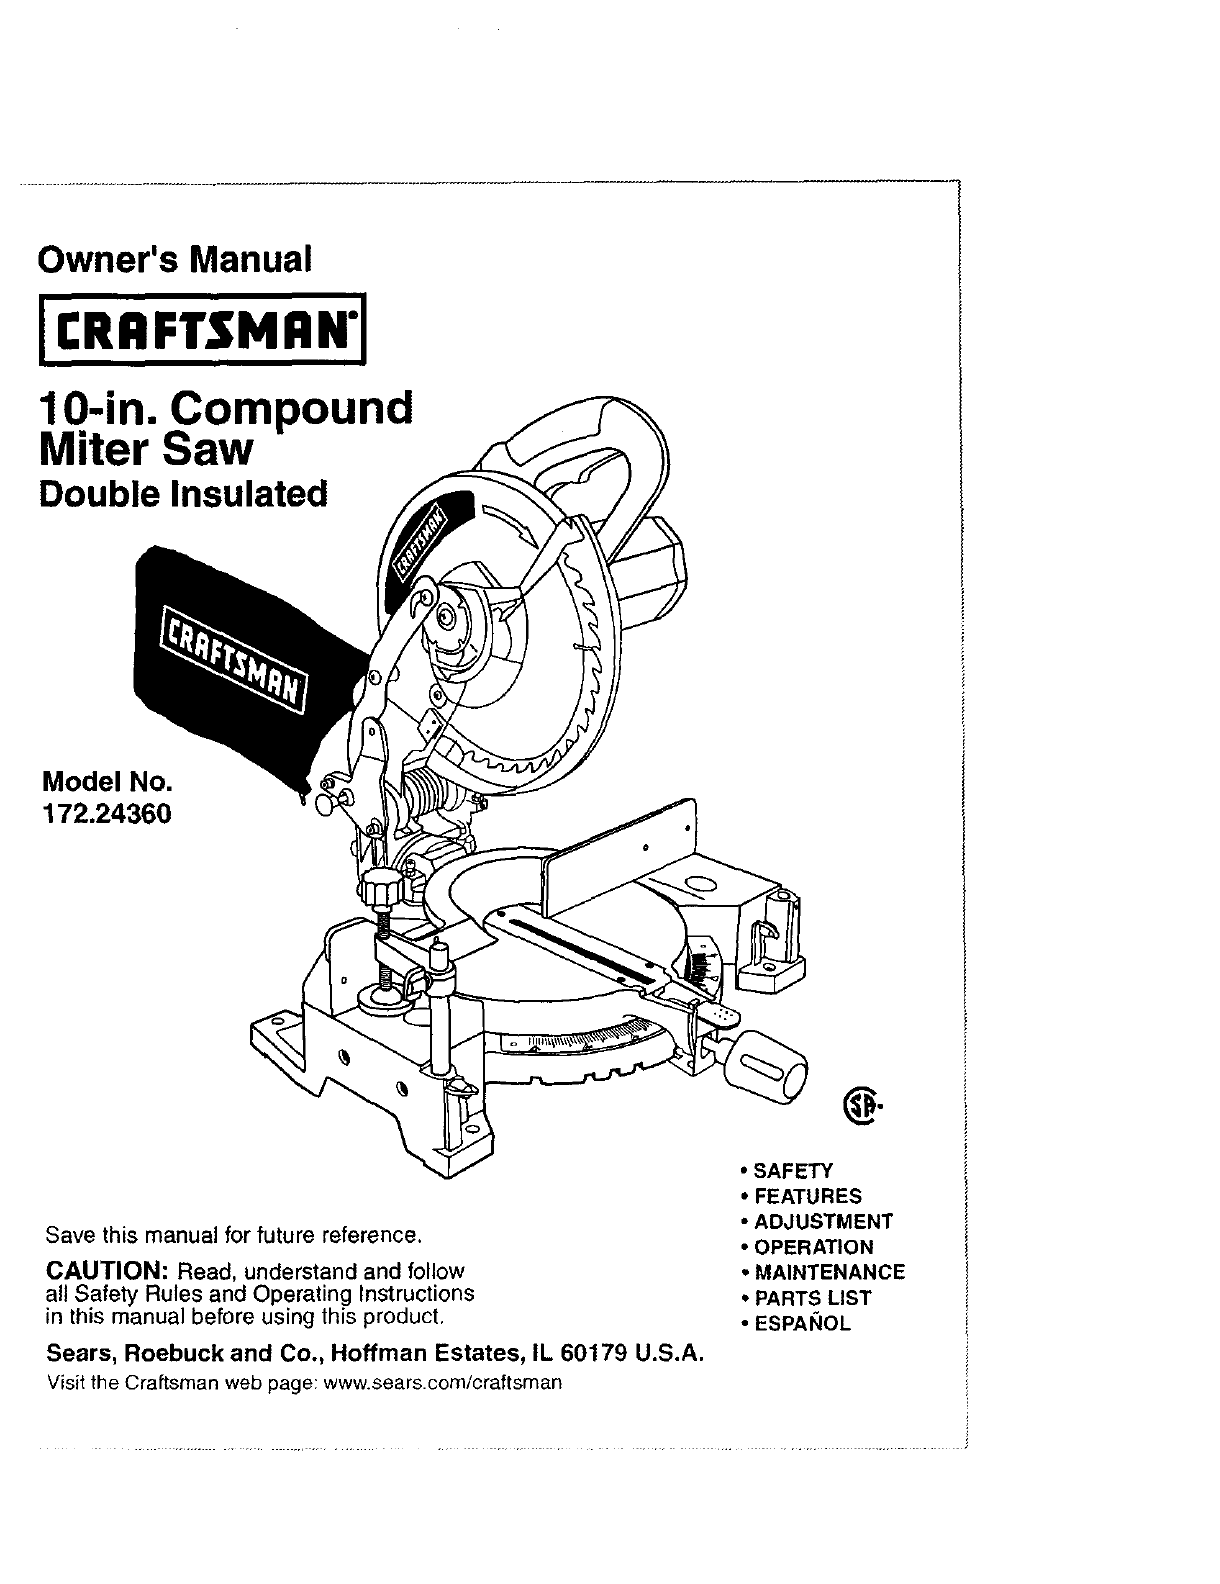 hight resolution of craftsman 17224360 user manual 10 compound miter saw manuals and guides l0408143